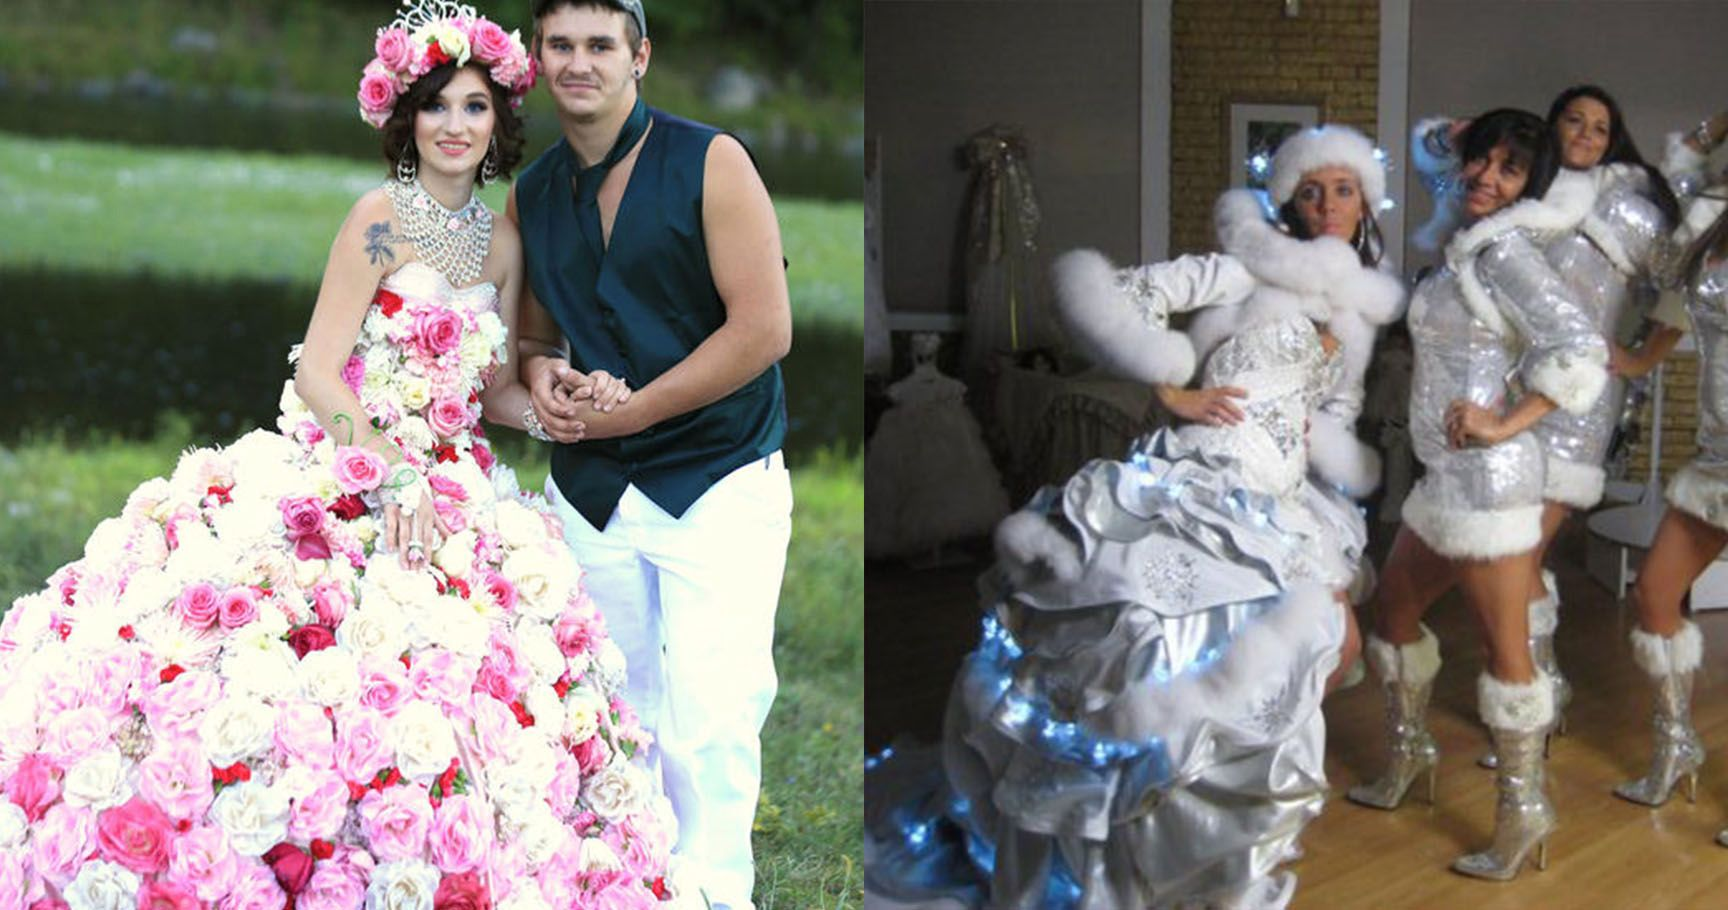 15 Most Extra Dresses From 'My Big Fat American Gypsy Wedding'